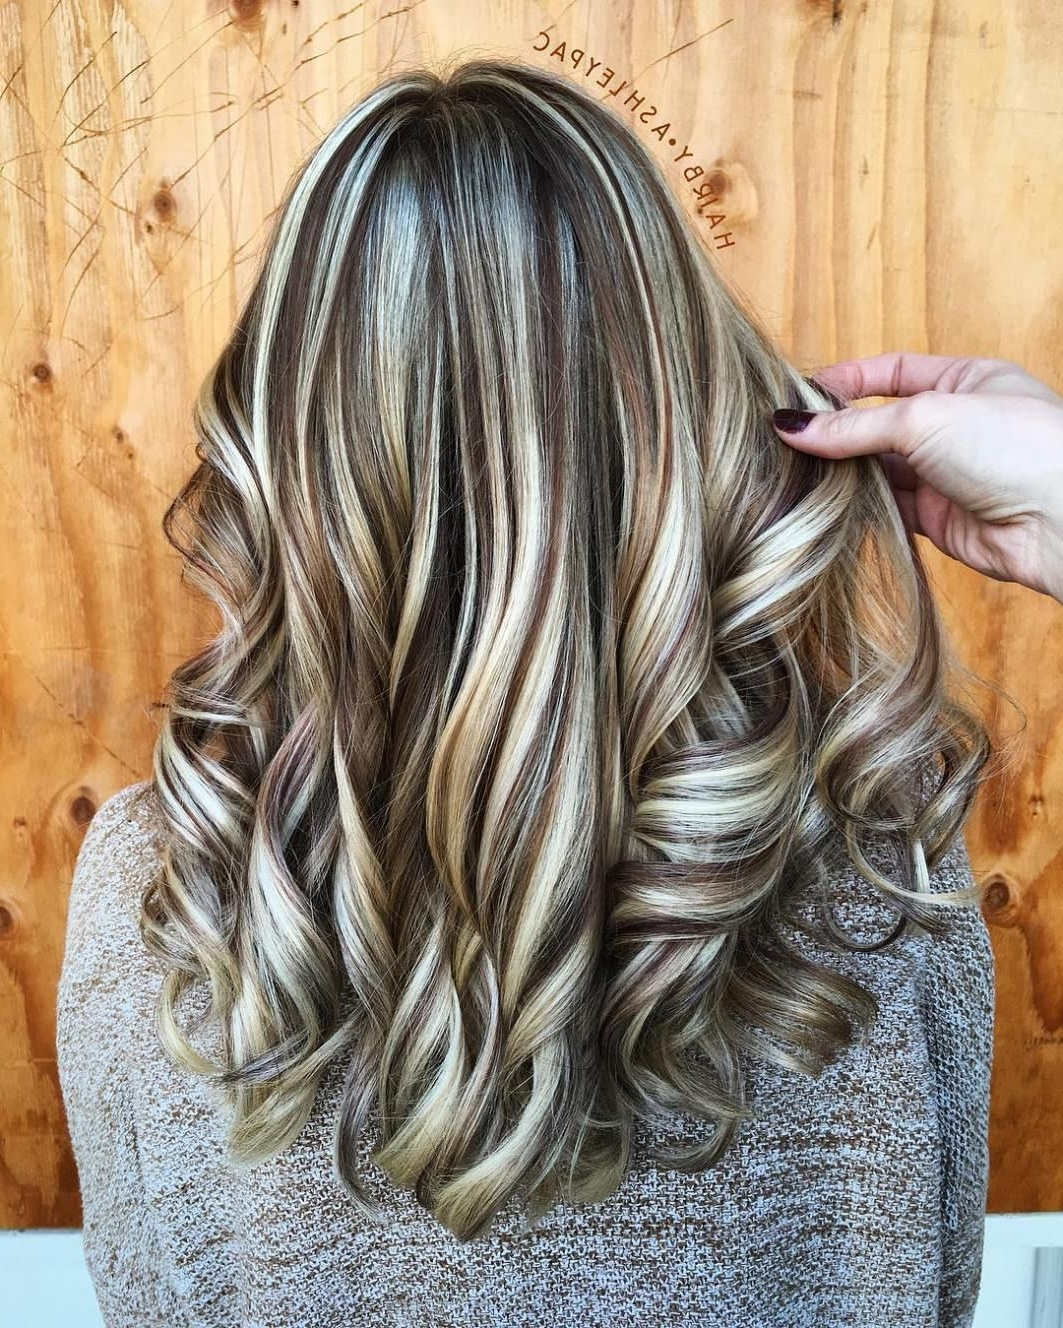 50 Ideas For Light Brown Hair With Highlights And Lowlights Pertaining To Preferred Dark Brown Hair Hairstyles With Silver Blonde Highlights (View 7 of 20)